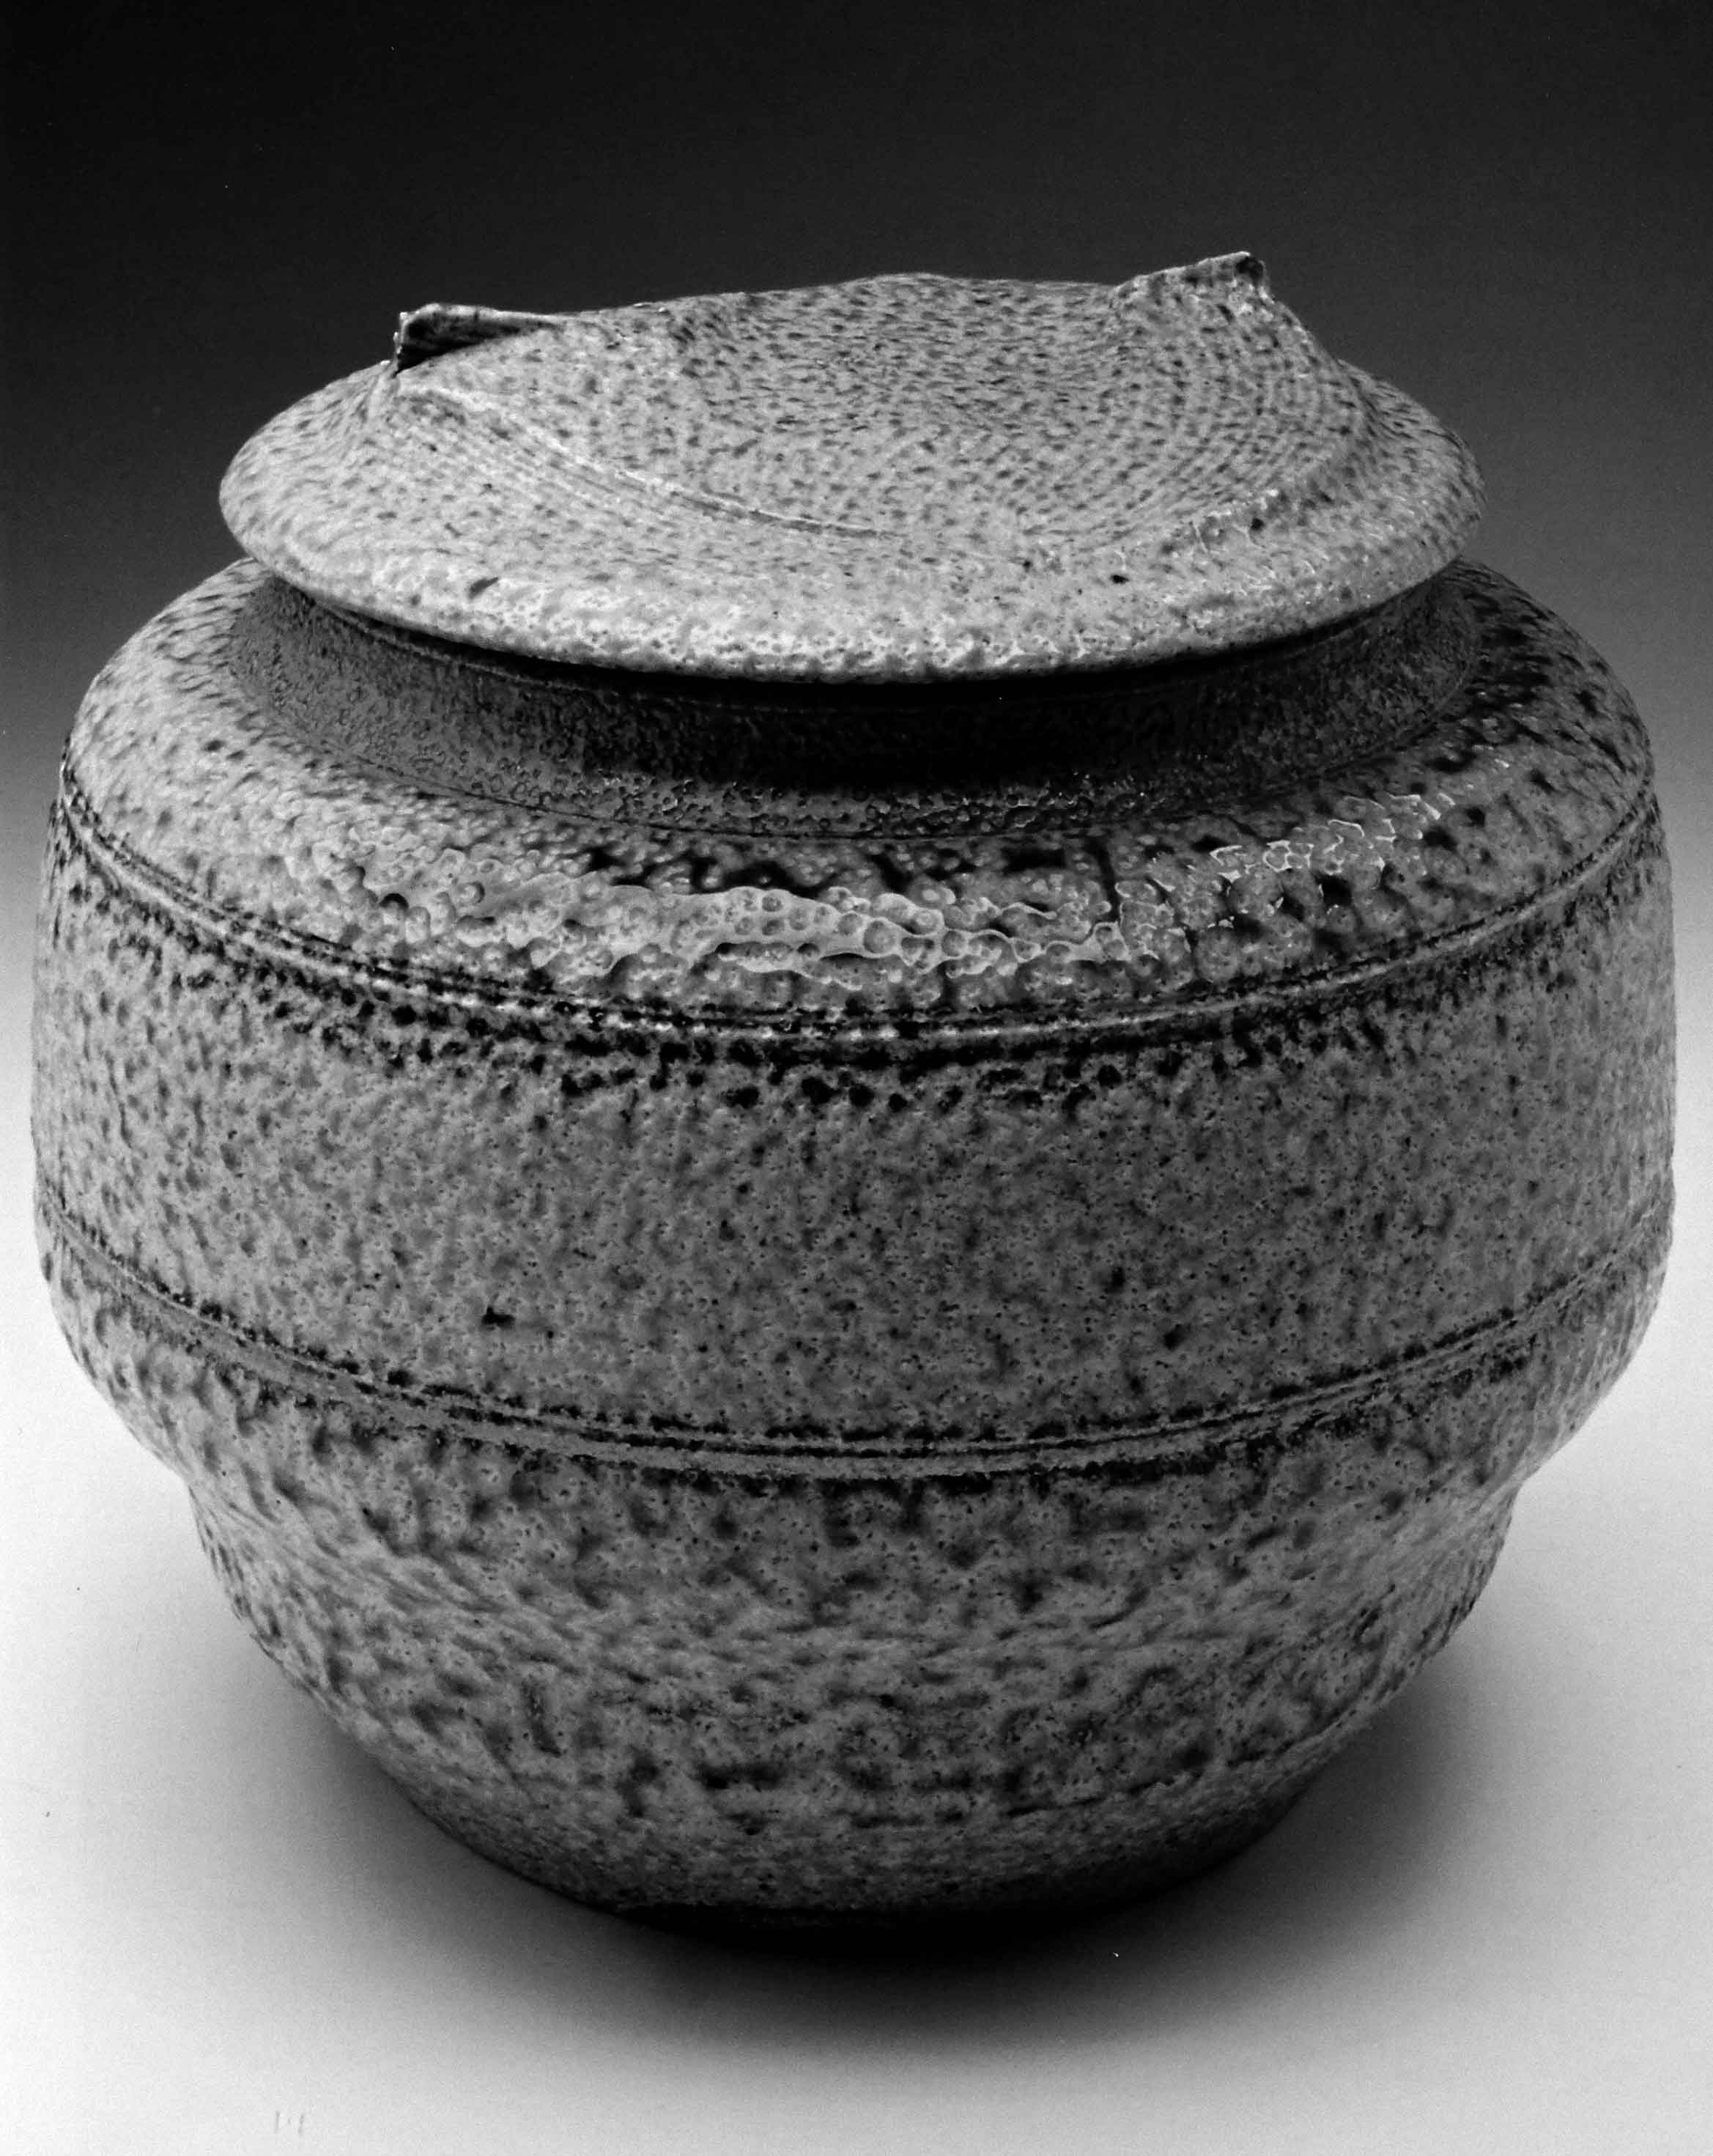 Karen Karnes. Covered Jar, c. 1972. Stoneware, salt-glazed, 7.5 x 7.5 in. Collection of Michael and Rose Peck. Photograph by Anthony Cunha, courtesy of the ASU Art Museum Ceramics Research Center. From Vol. 39, No. 1, 2011.